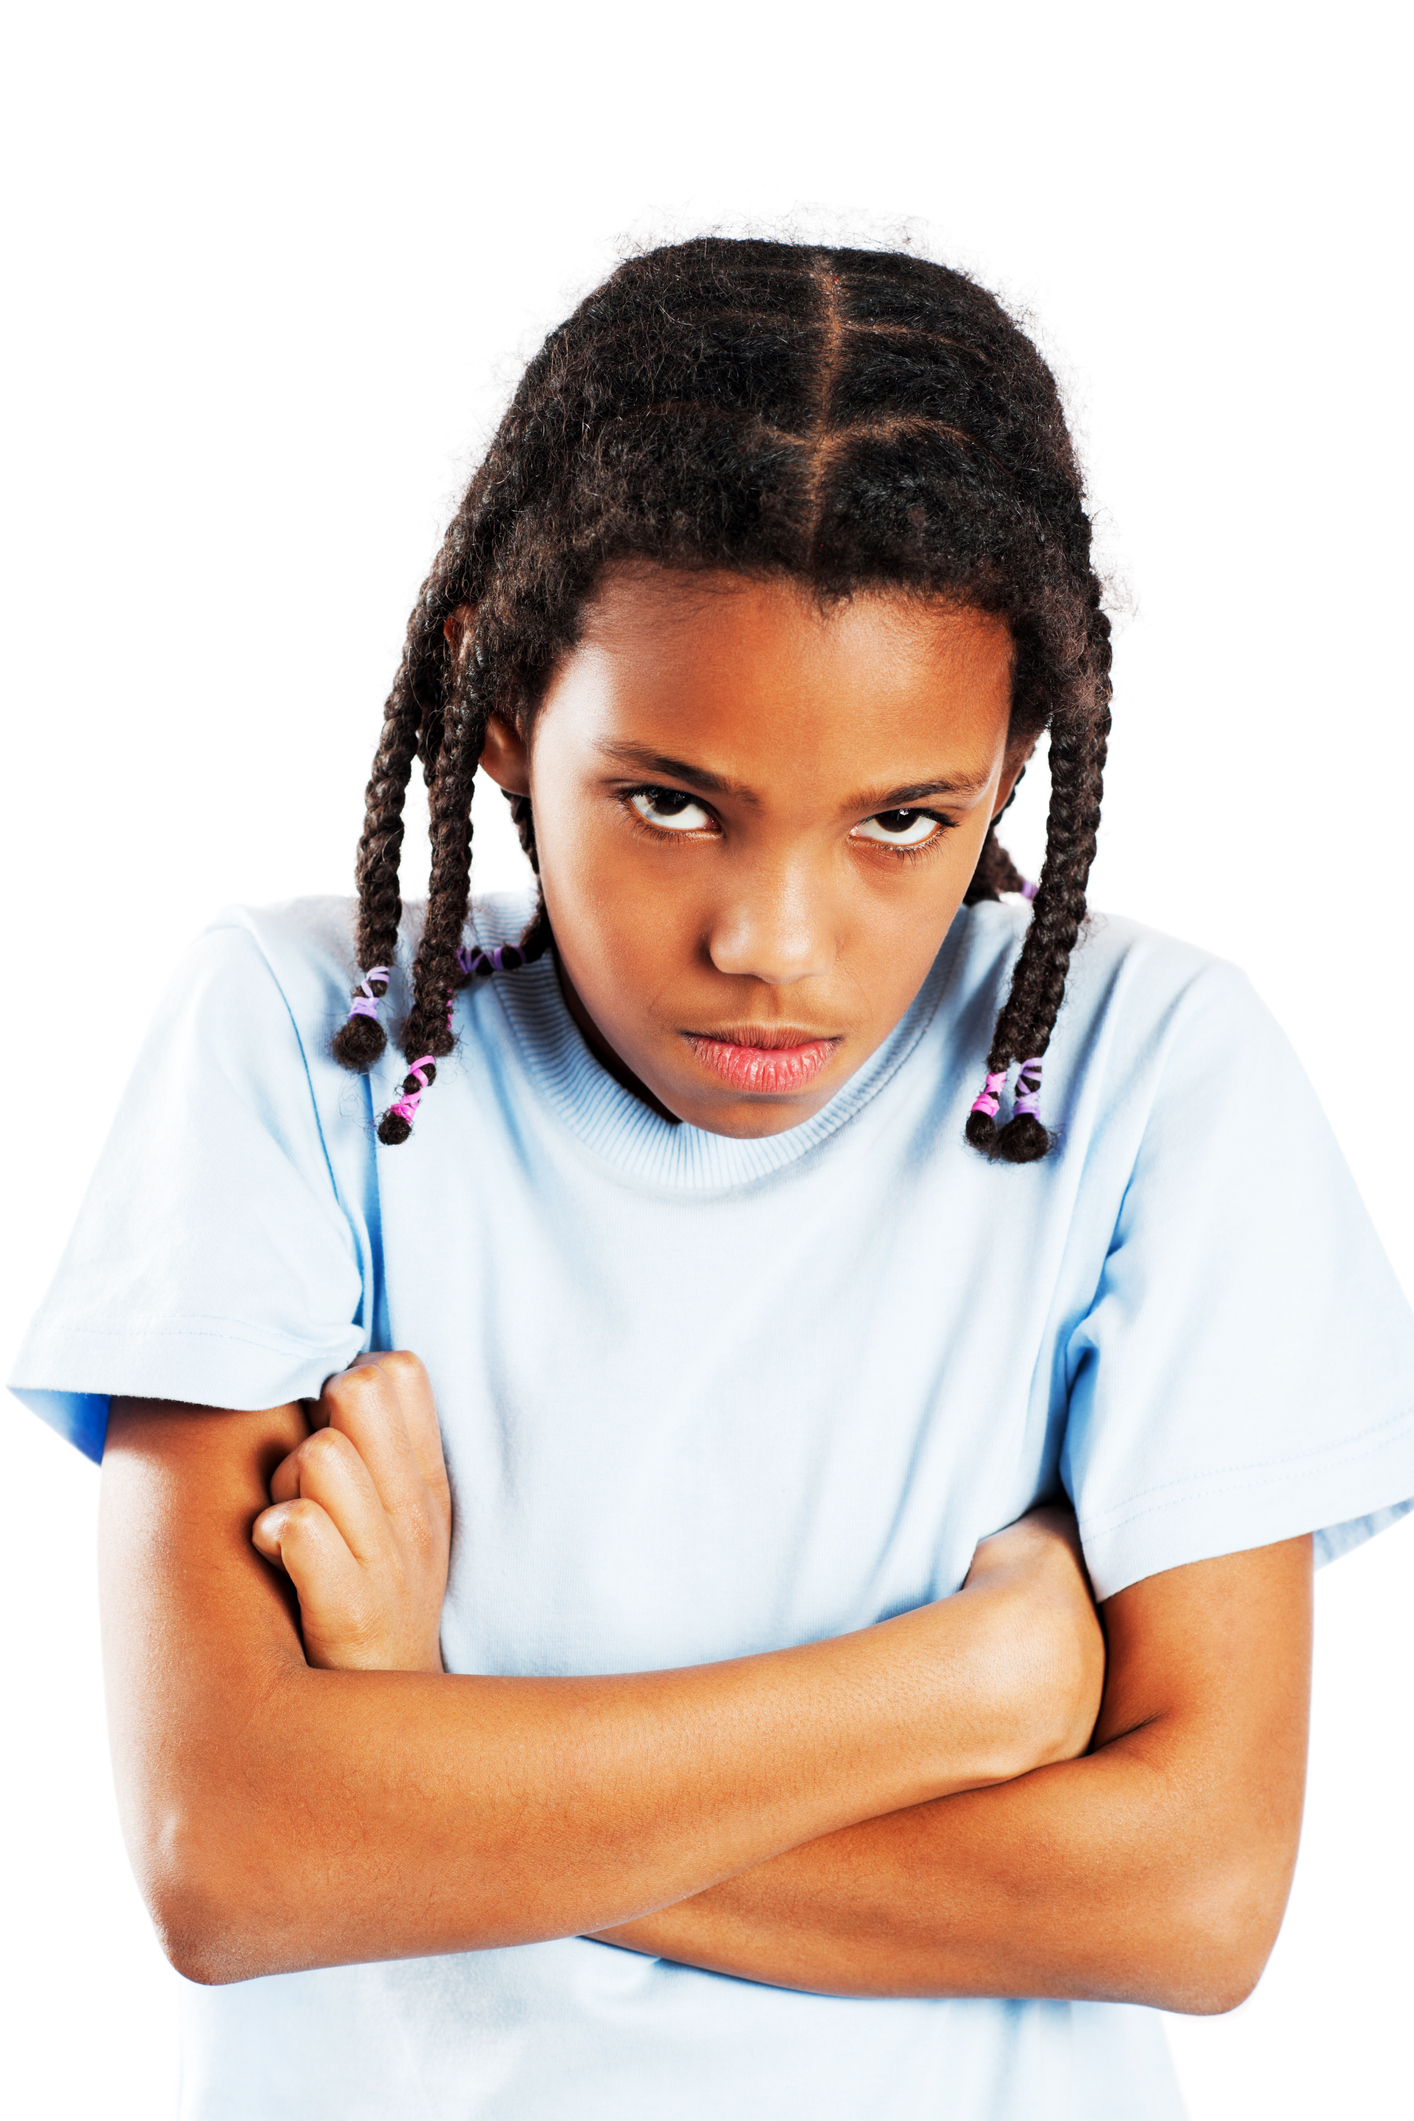 What To Do If Your Child Hits You